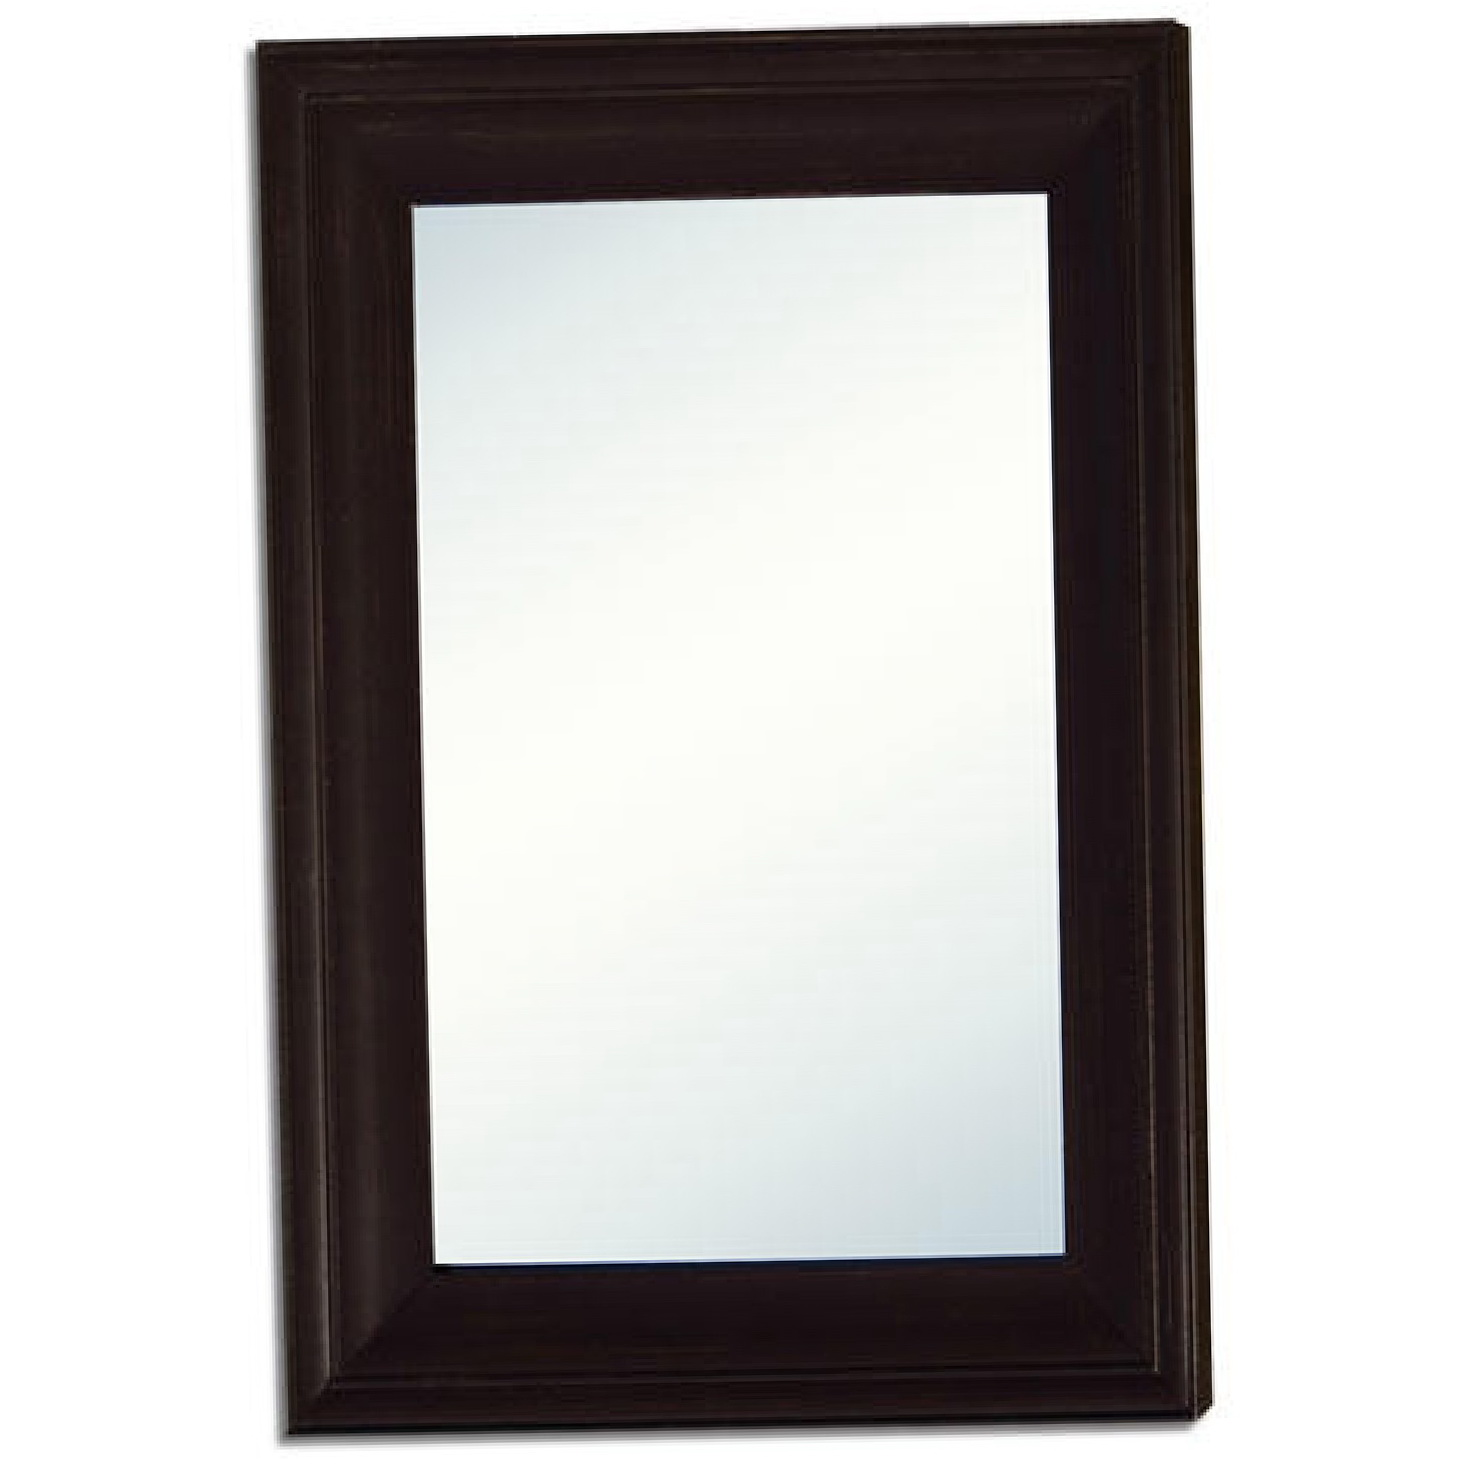 Oil Rubbed Bronze Mirror Frame Kit